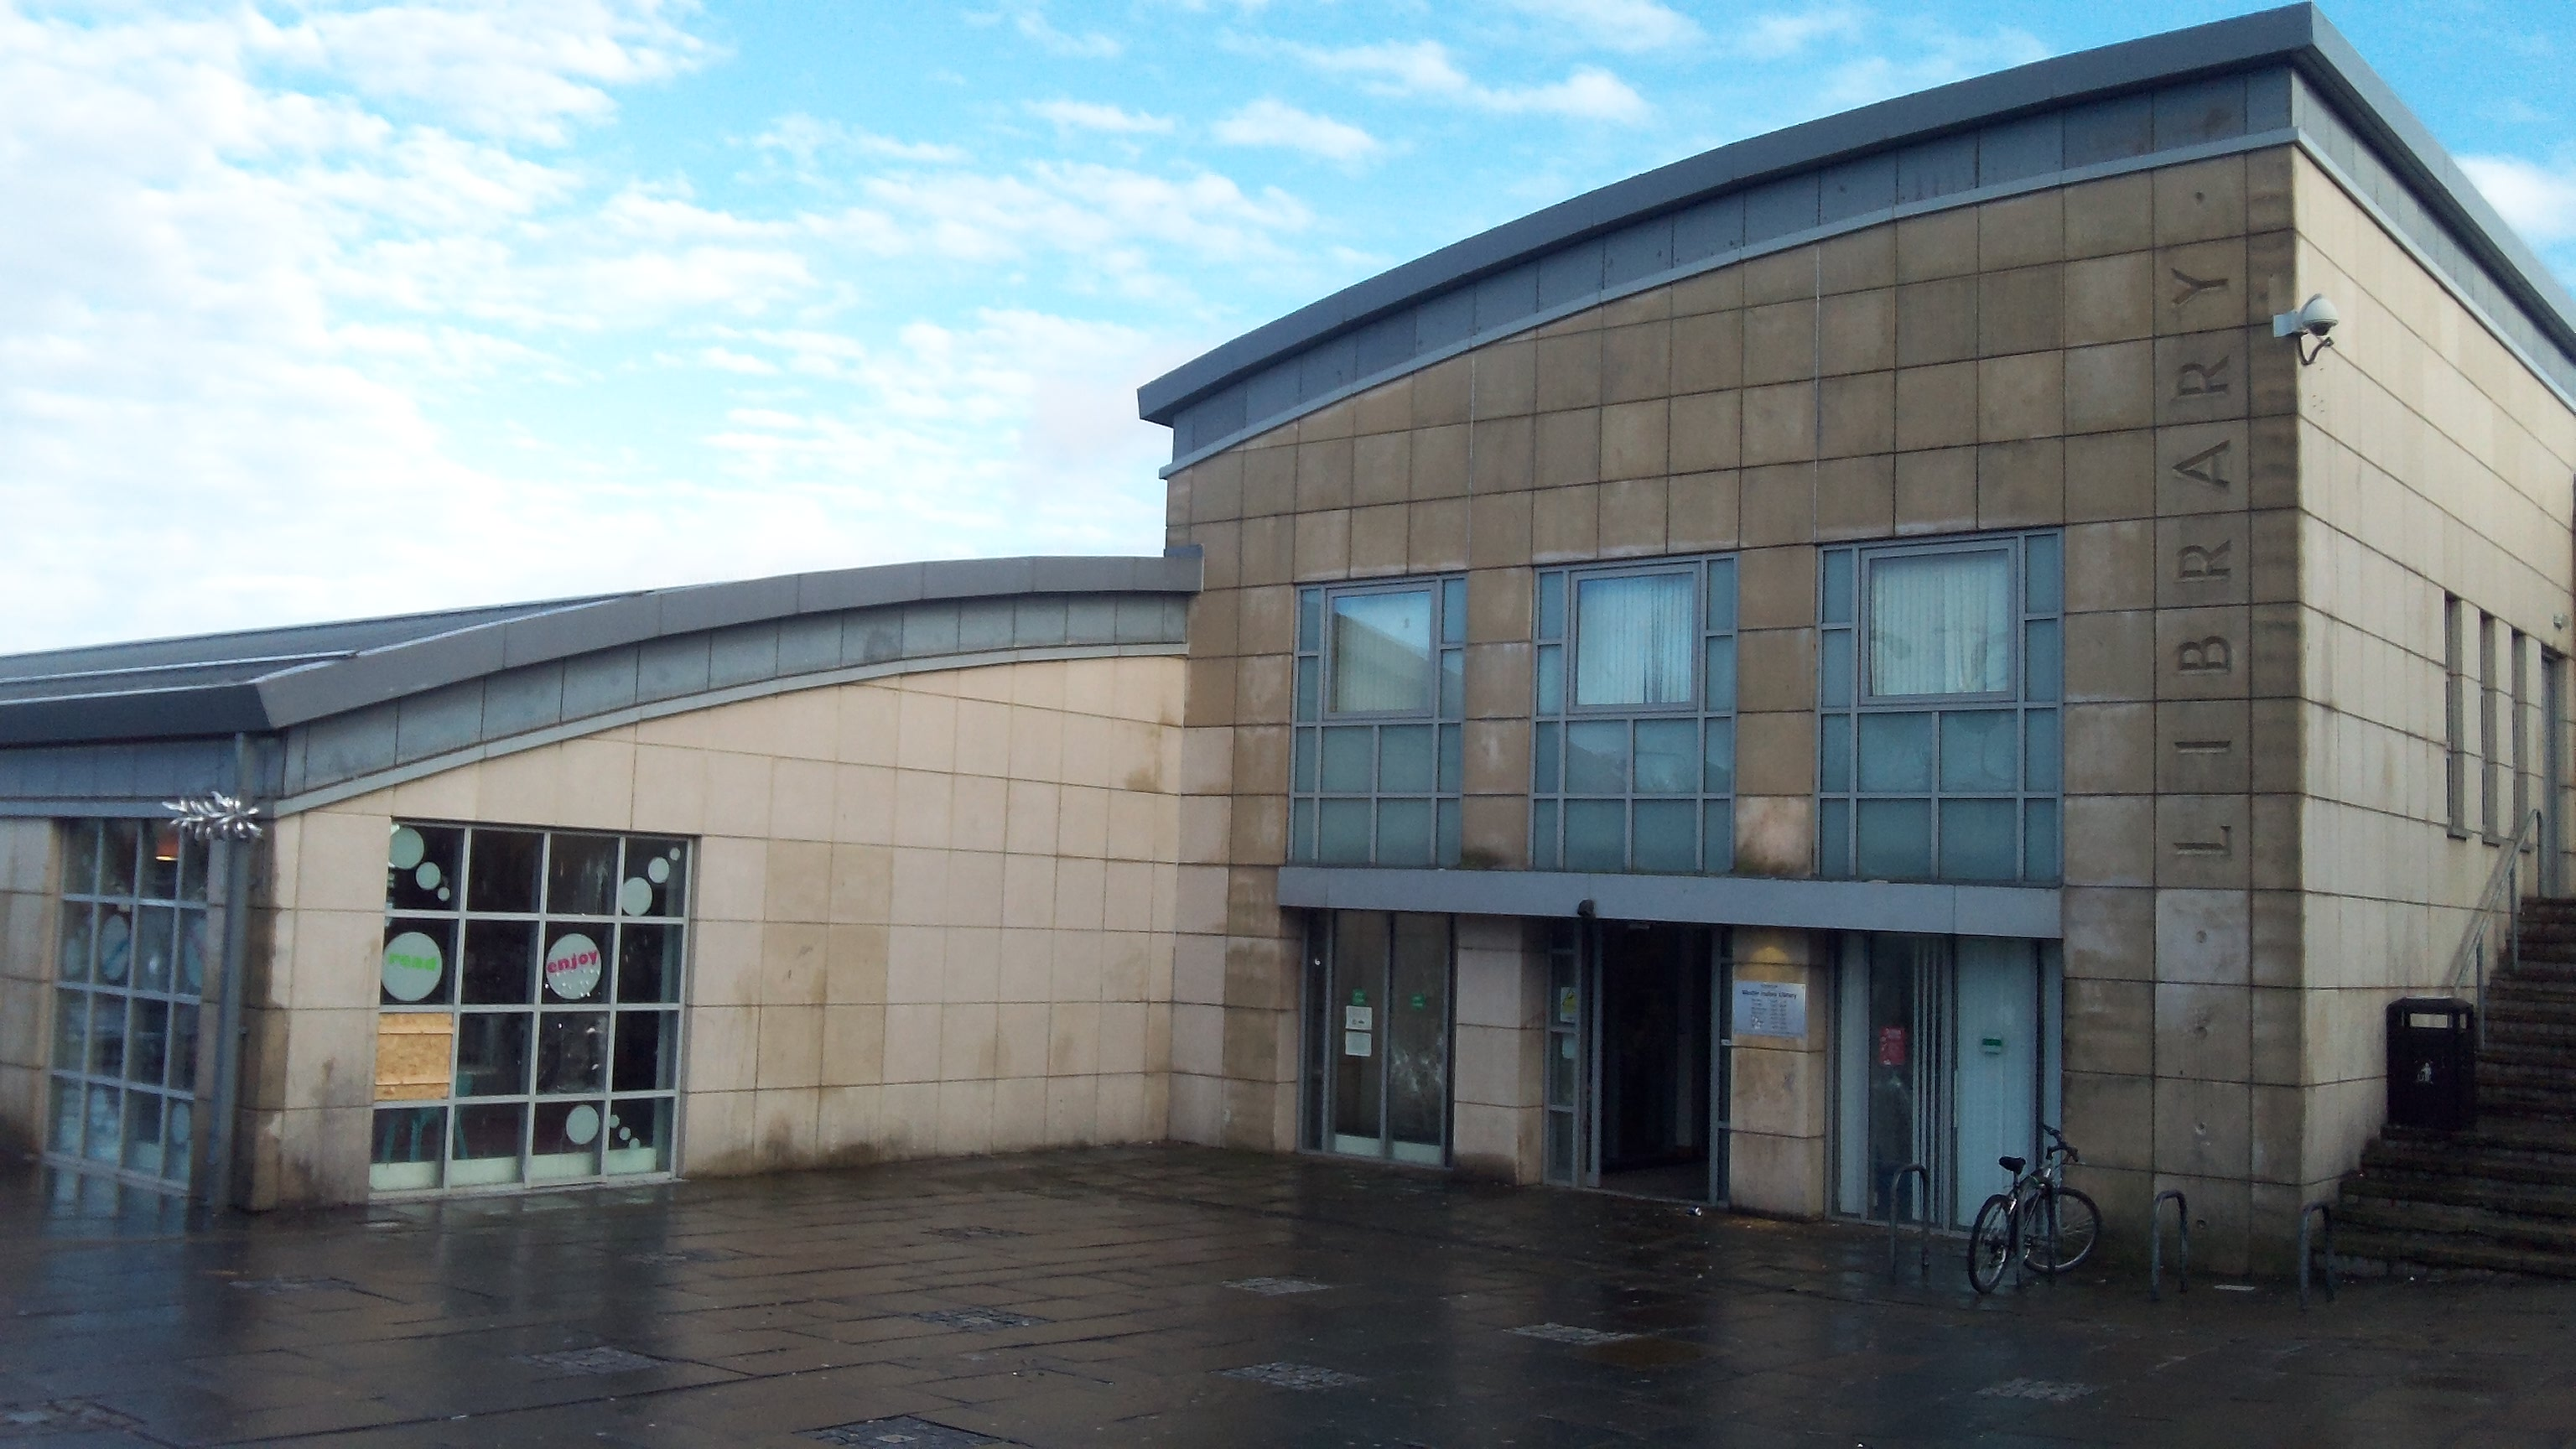 Wester Hailes Library